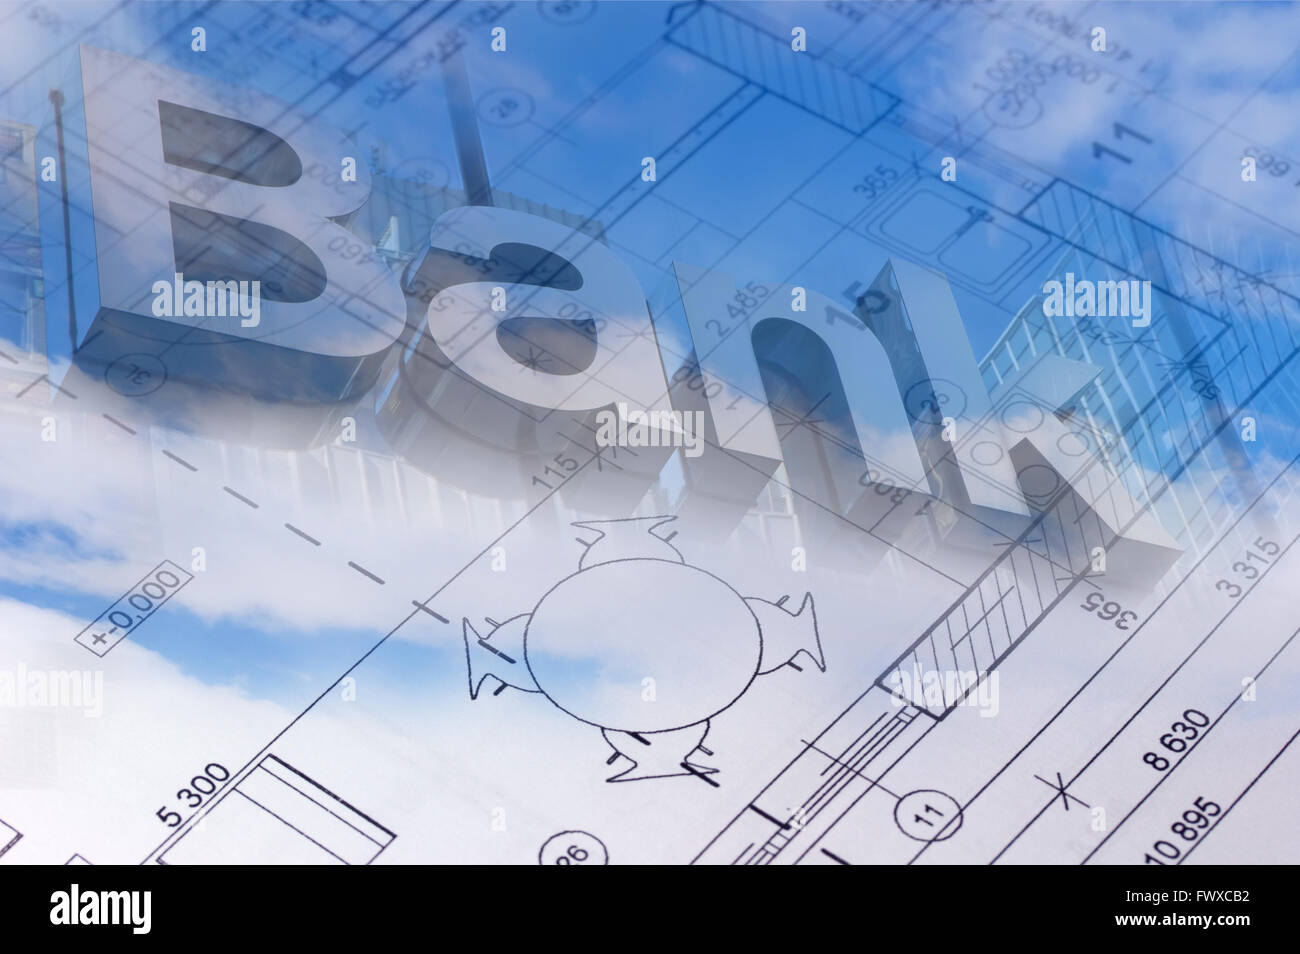 Blue sky with clouds and the blueprint of the house with bank sign blue sky with clouds and the blueprint of the house with bank sign in the background malvernweather Image collections